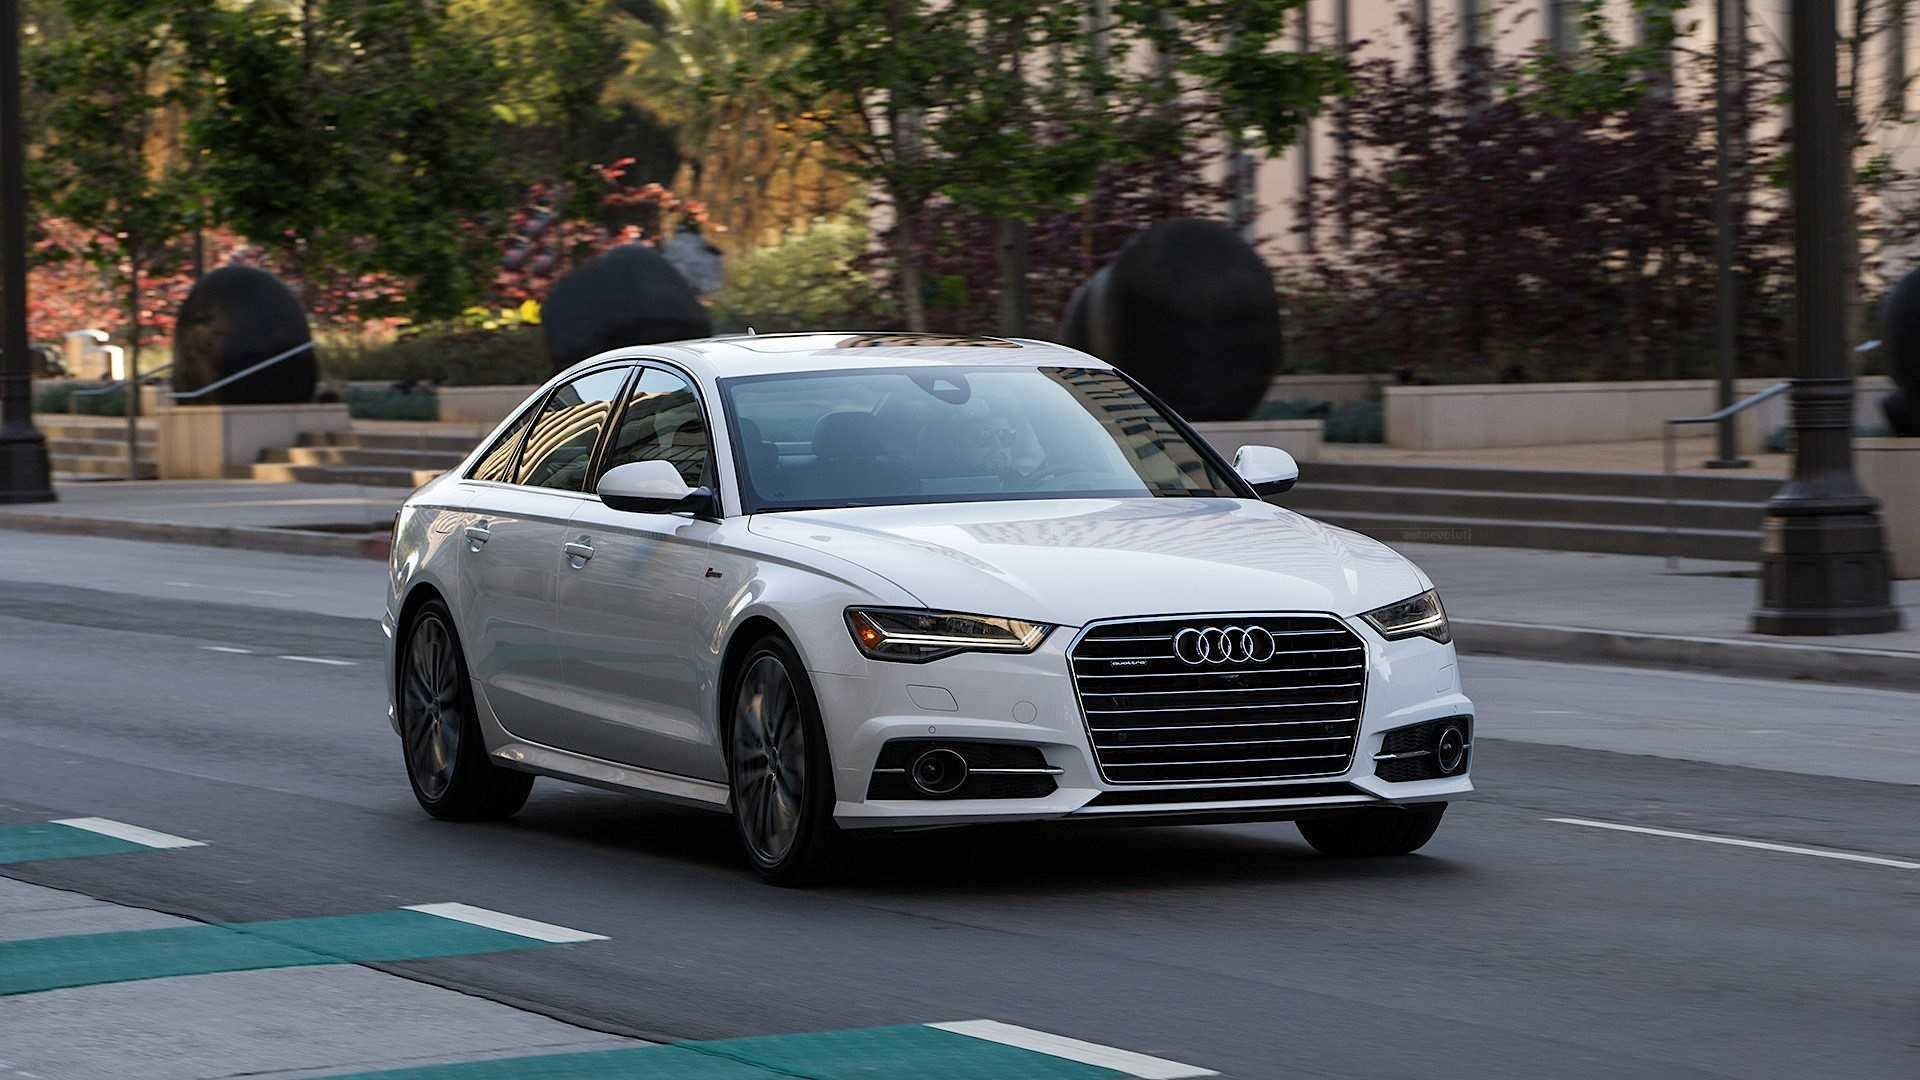 Audi A7 2016 White Audi A7 Rs7 2016 White Mikata Co